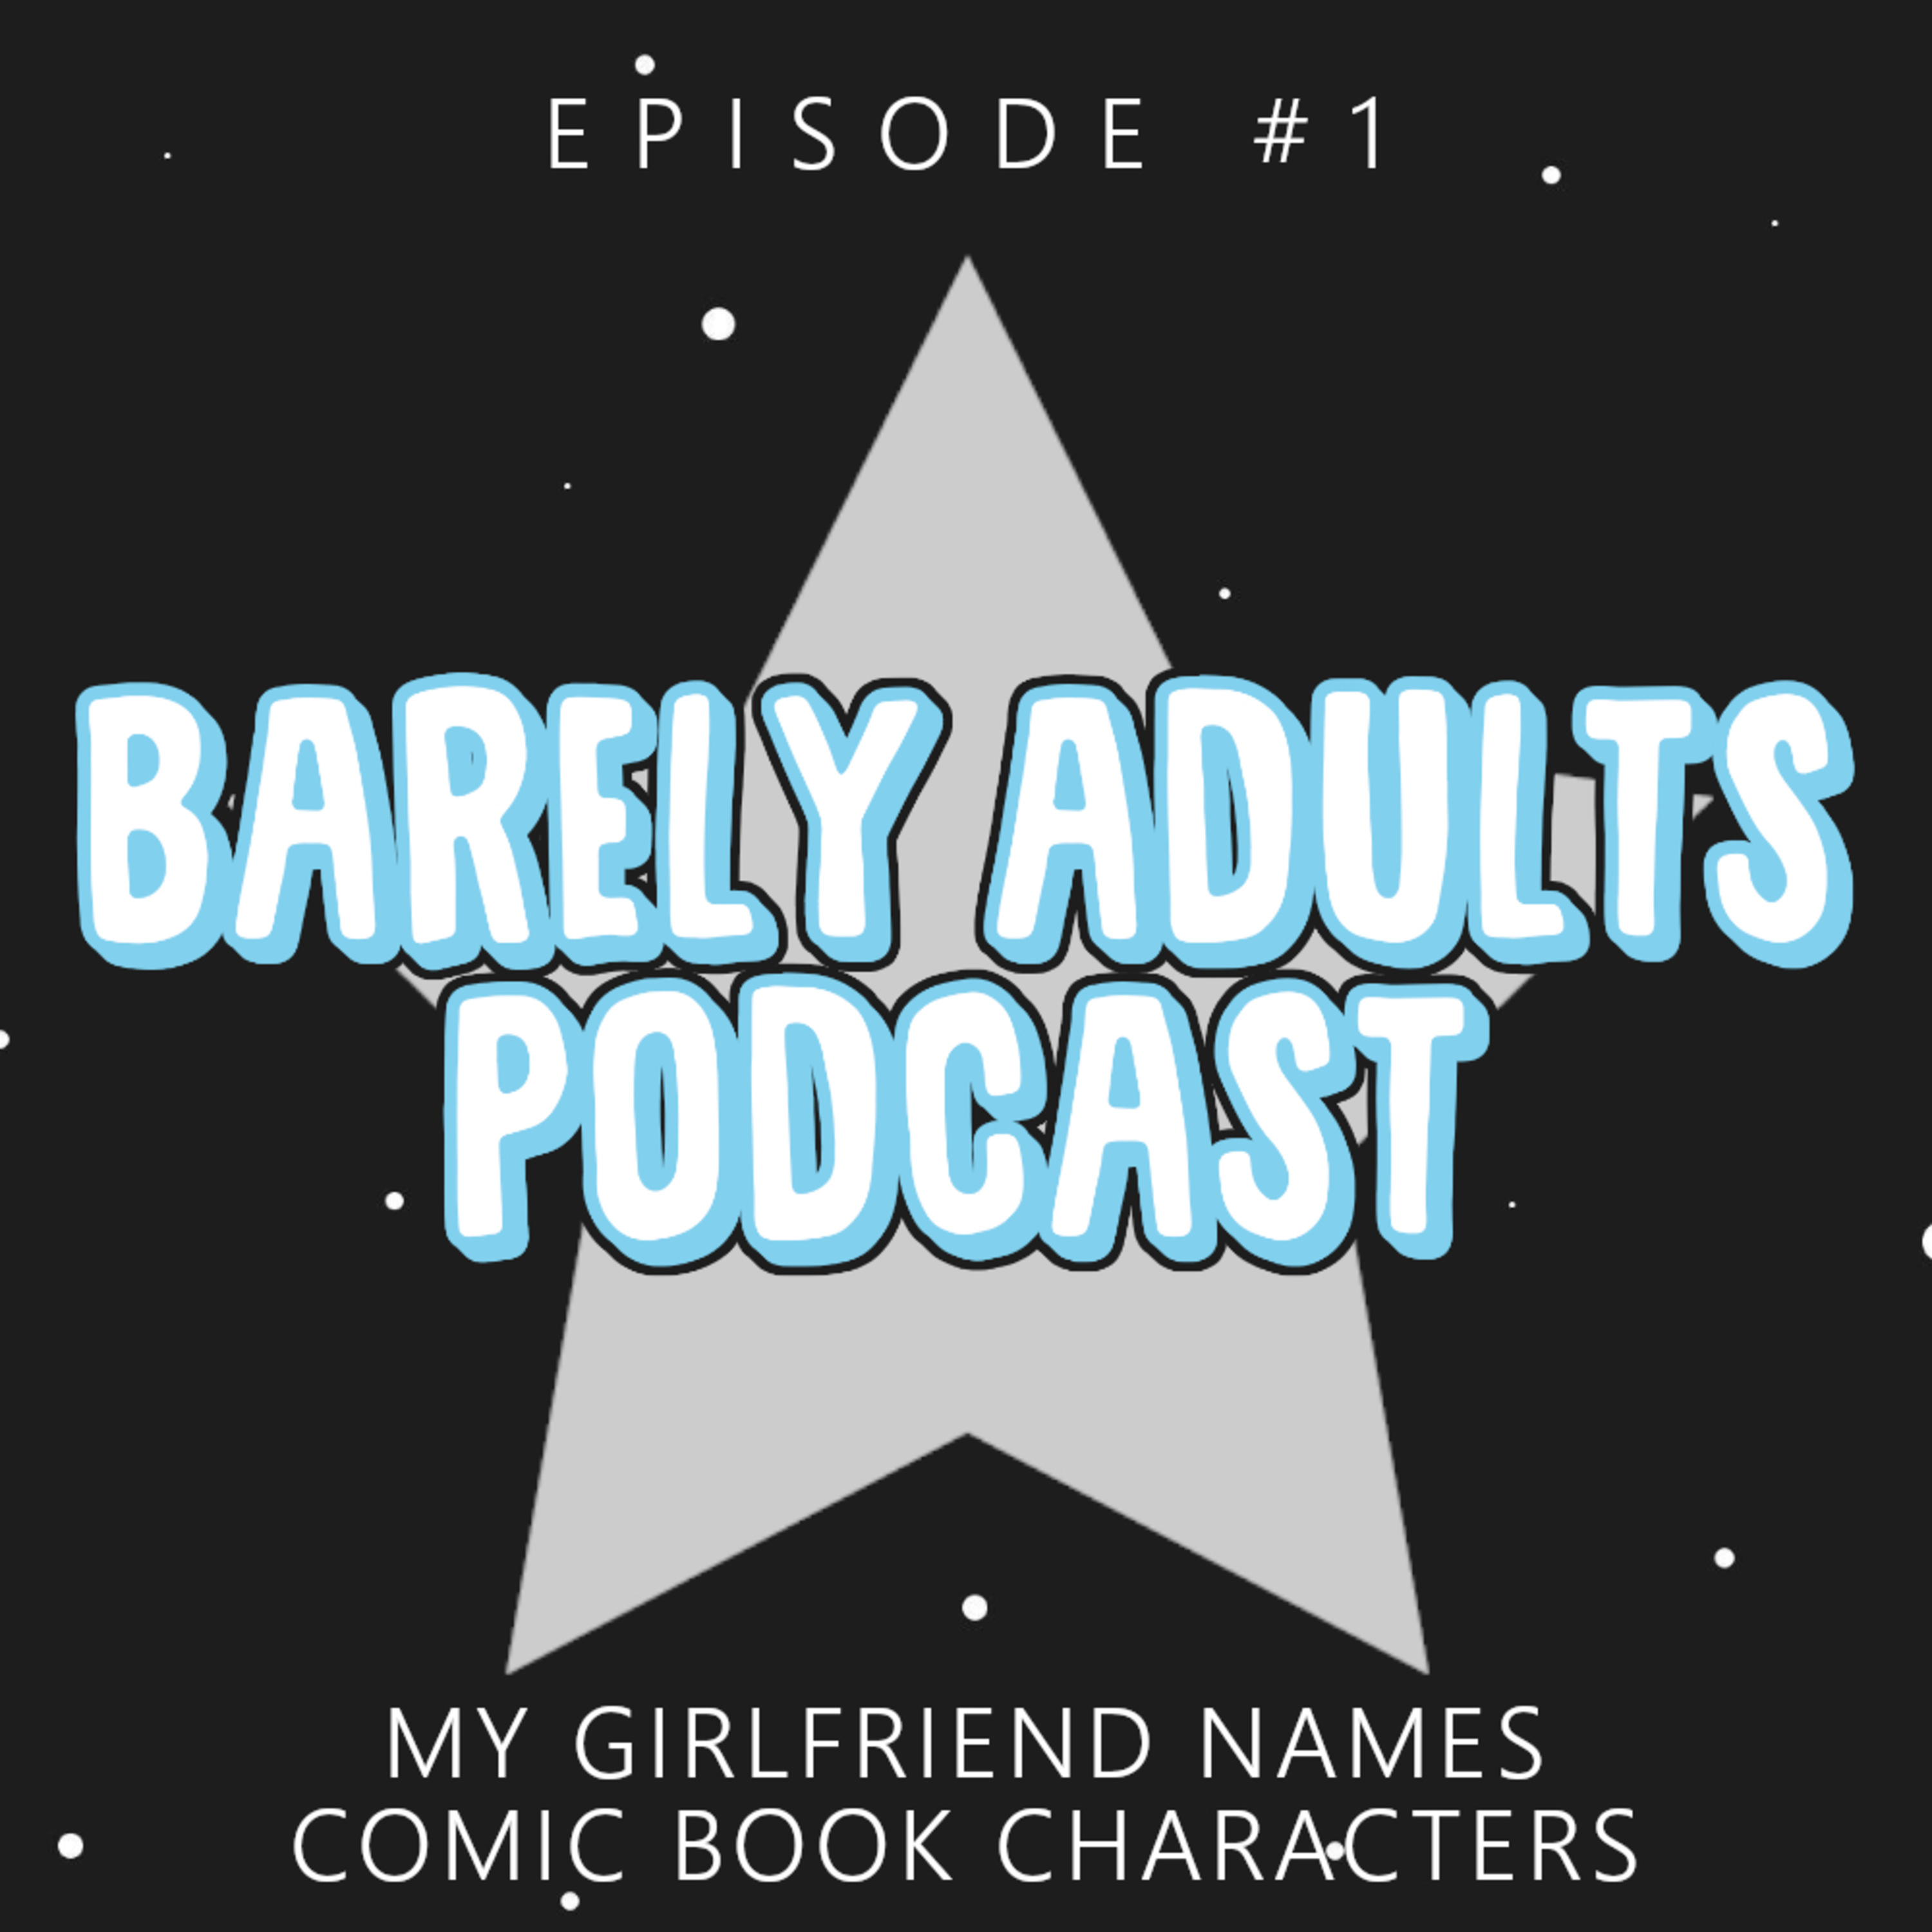 My Girlfriend Names Comic Book Characters | Barely Adults Podcast